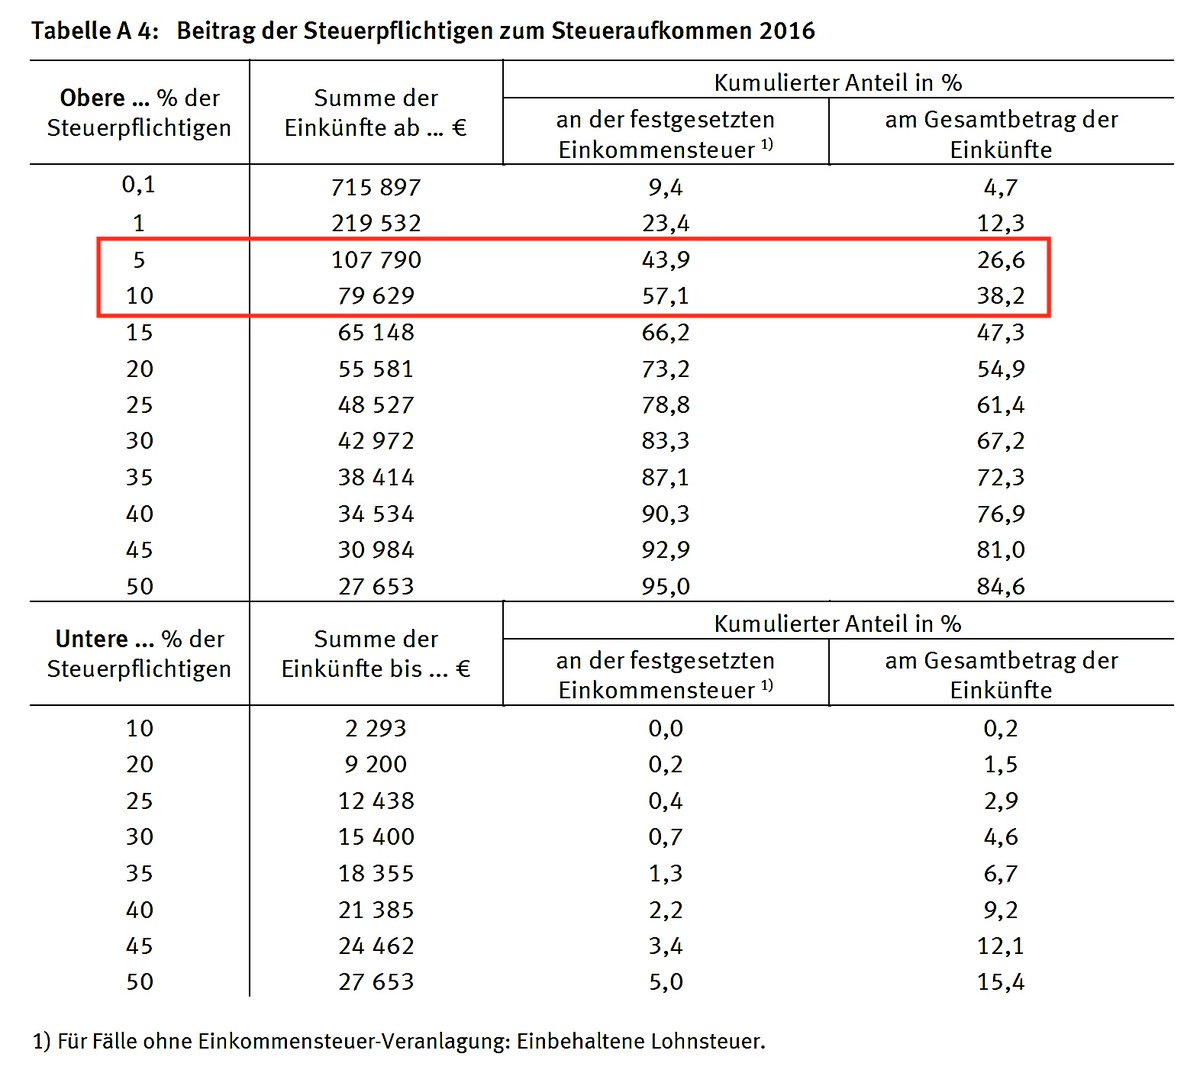 Good morning from #Germany, where the Top 5 percent of income earners pay 43.9% of income tax. The Top 10 of taxpayers account for 57% of total income tax. The bottom half, on the other hand, pays only 5% of income tax. (HT @Tiefseher)pic.twitter.com/MS9gjb5LEB